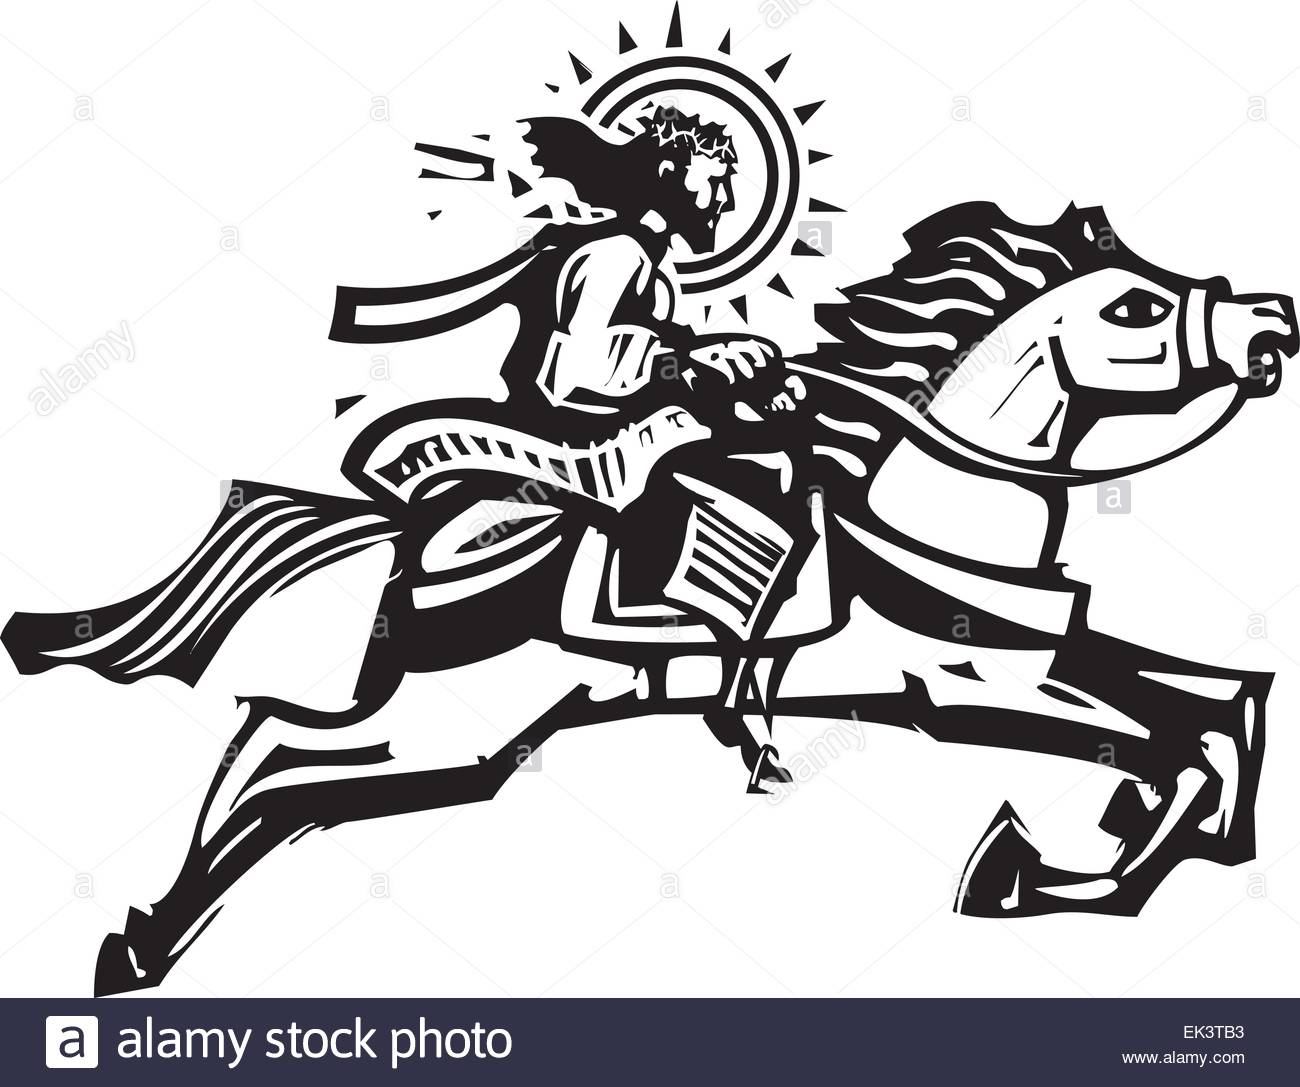 Woodcut Style image of Jesus Christ riding a leaping white horse.